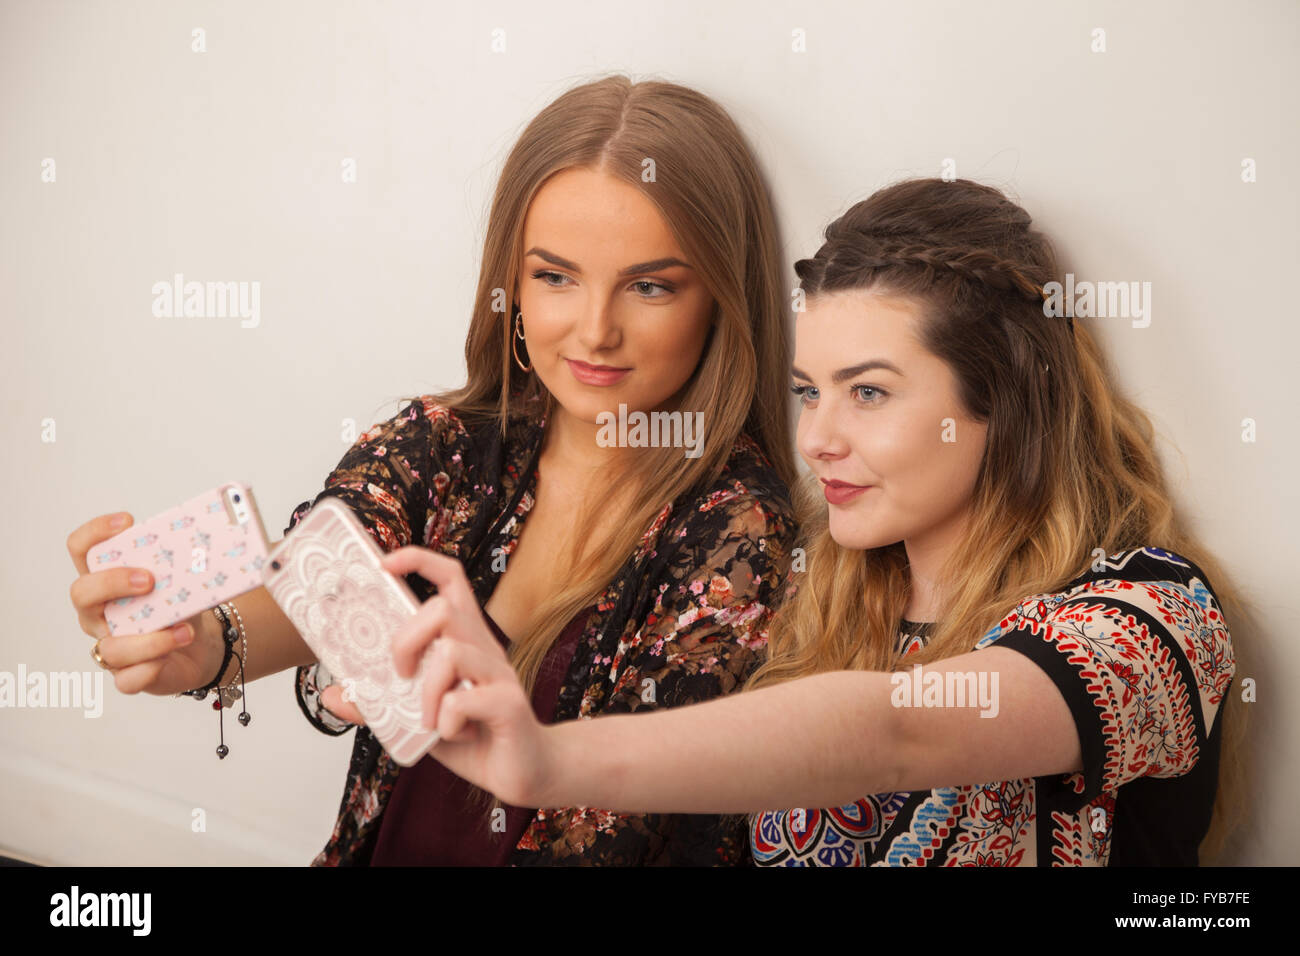 Two teenage girls taking a selfie of themselves. - Stock Image